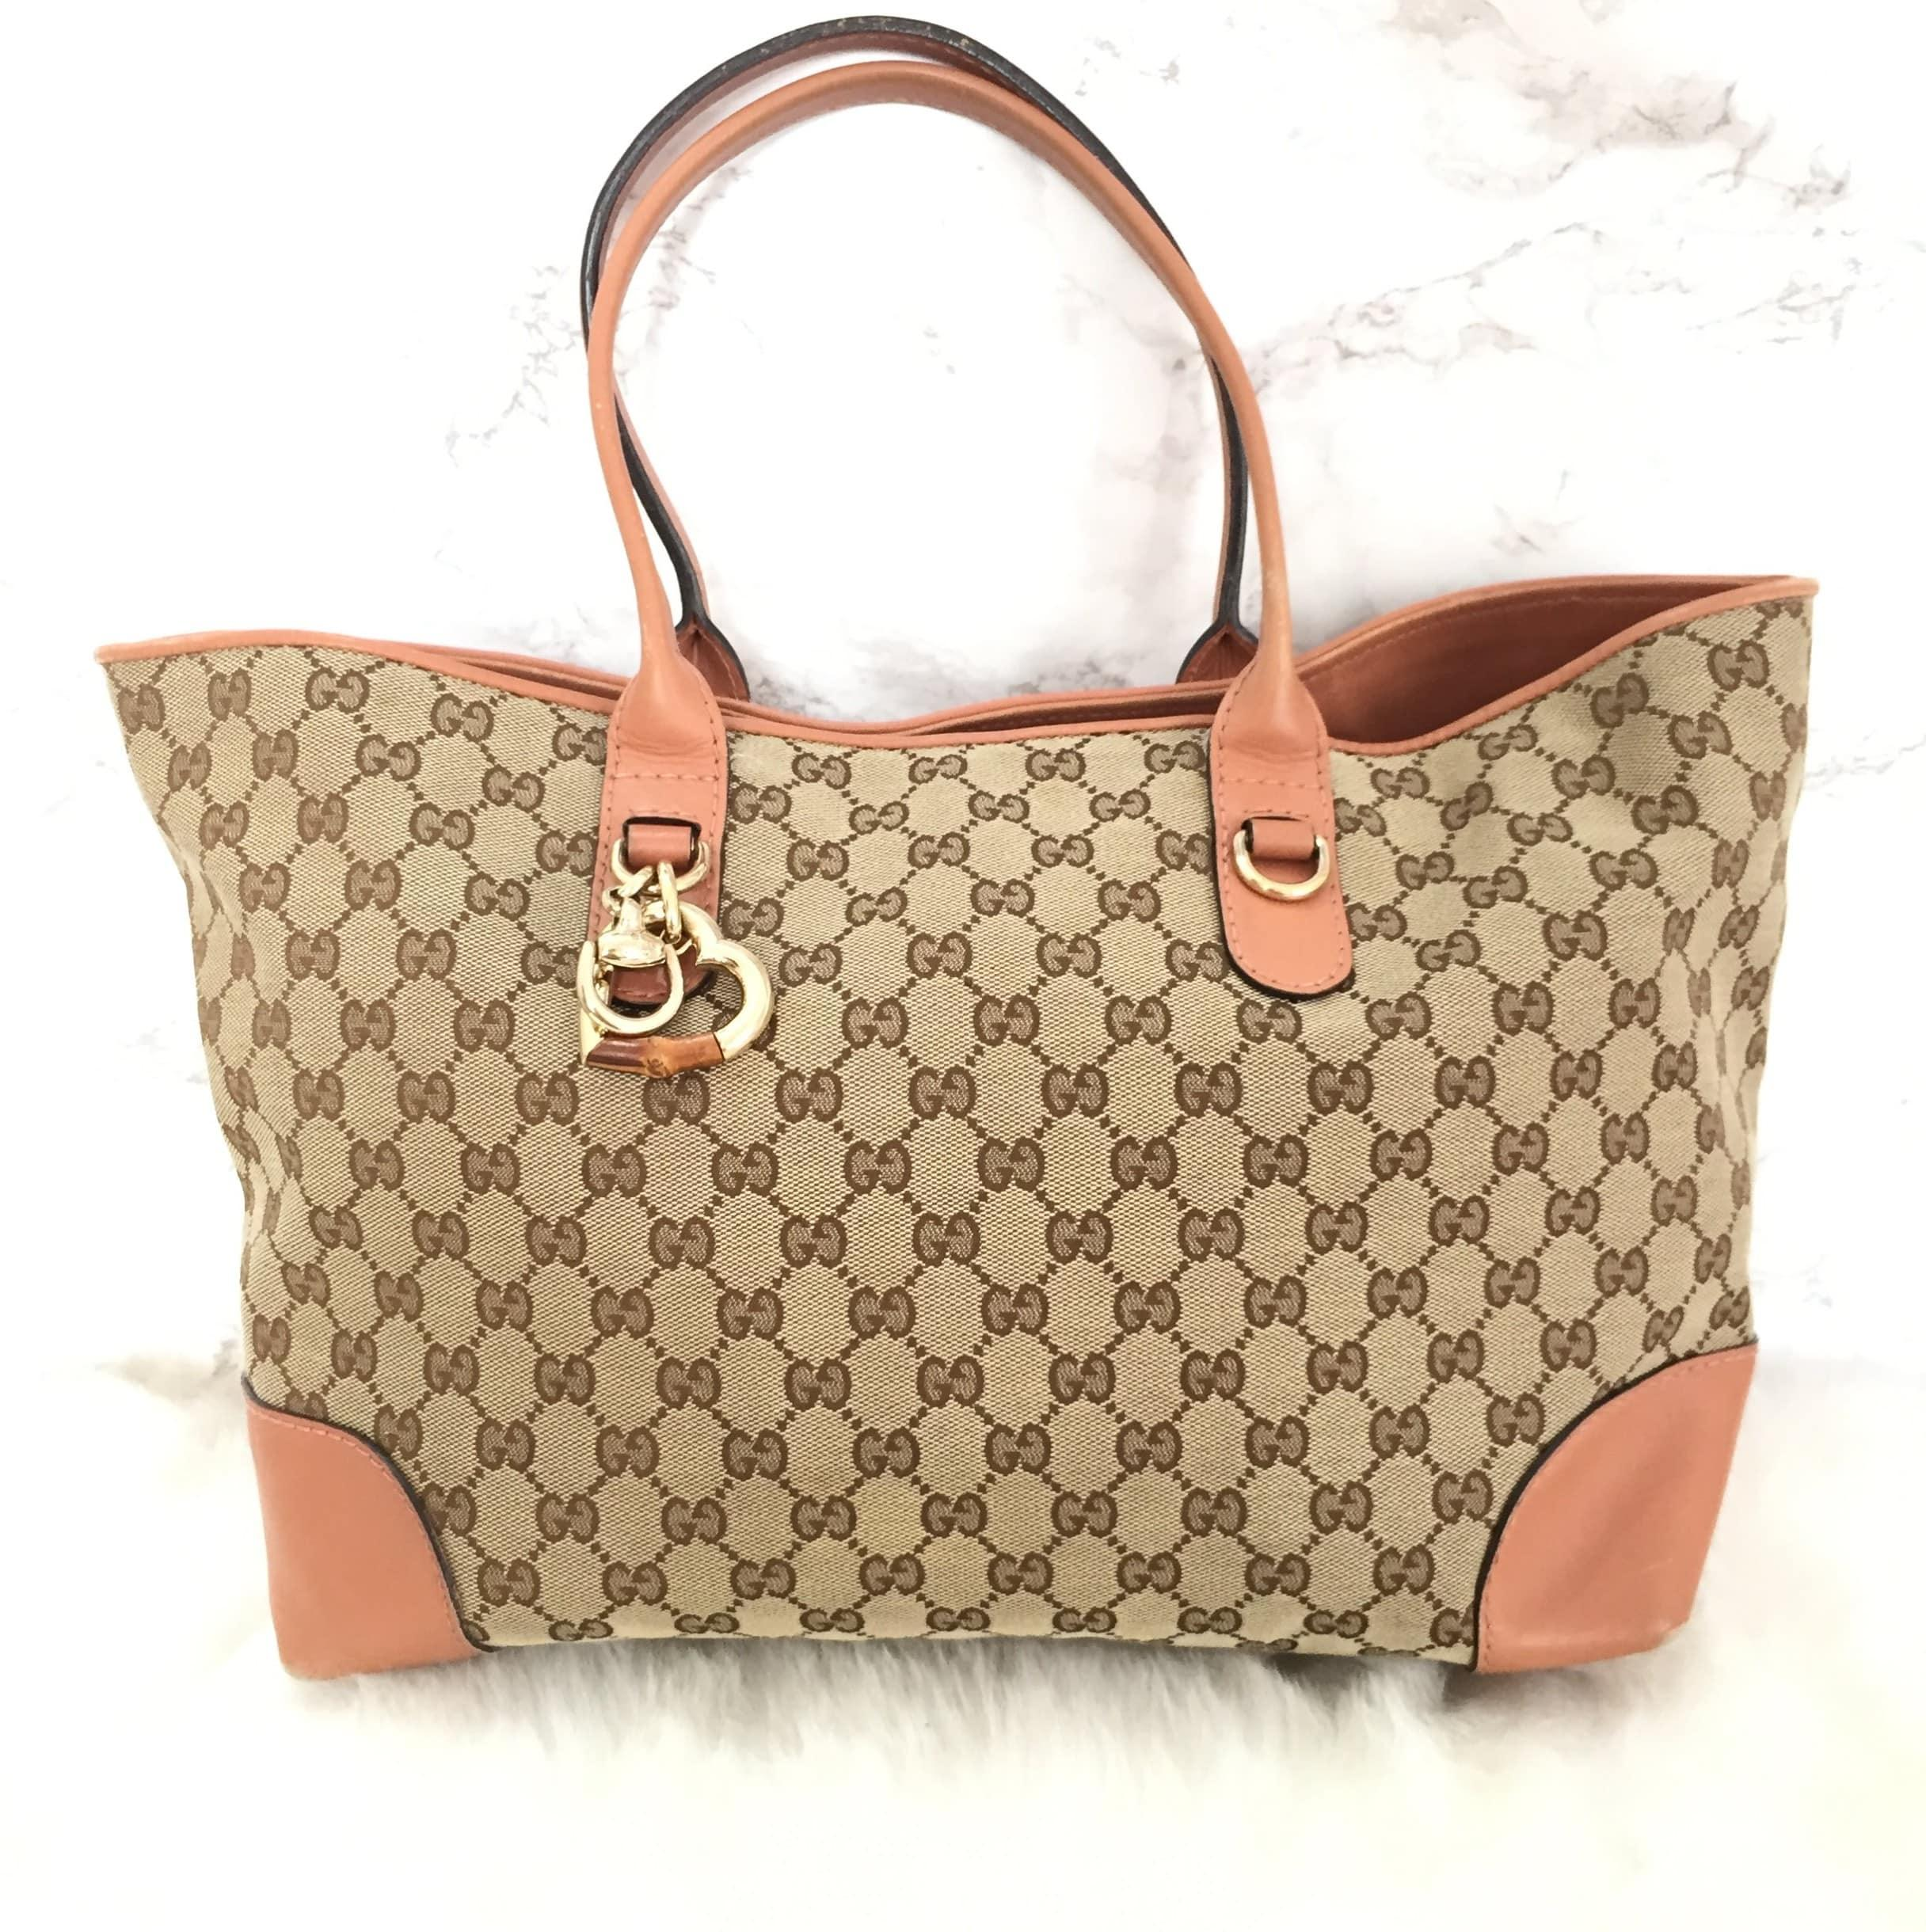 a60ab05b10d Gucci Shopper Vintage Tote bag – Boutique SecondLife